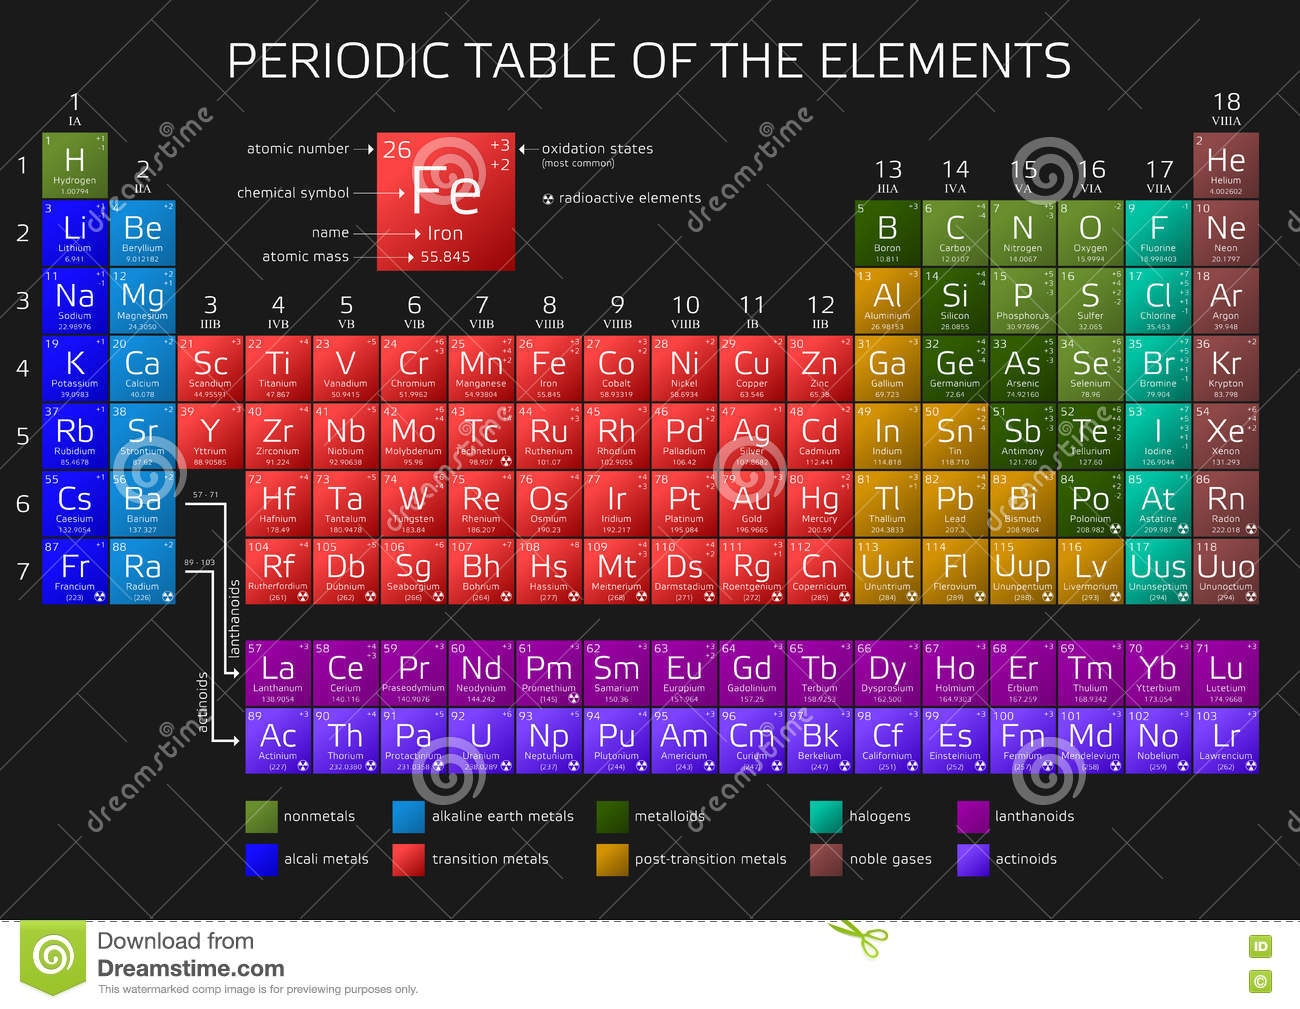 Mendeleevs periodic table of the elements stock illustration mendeleevs periodic table of the elements stock illustration illustration of graphic actinides 78817903 urtaz Images